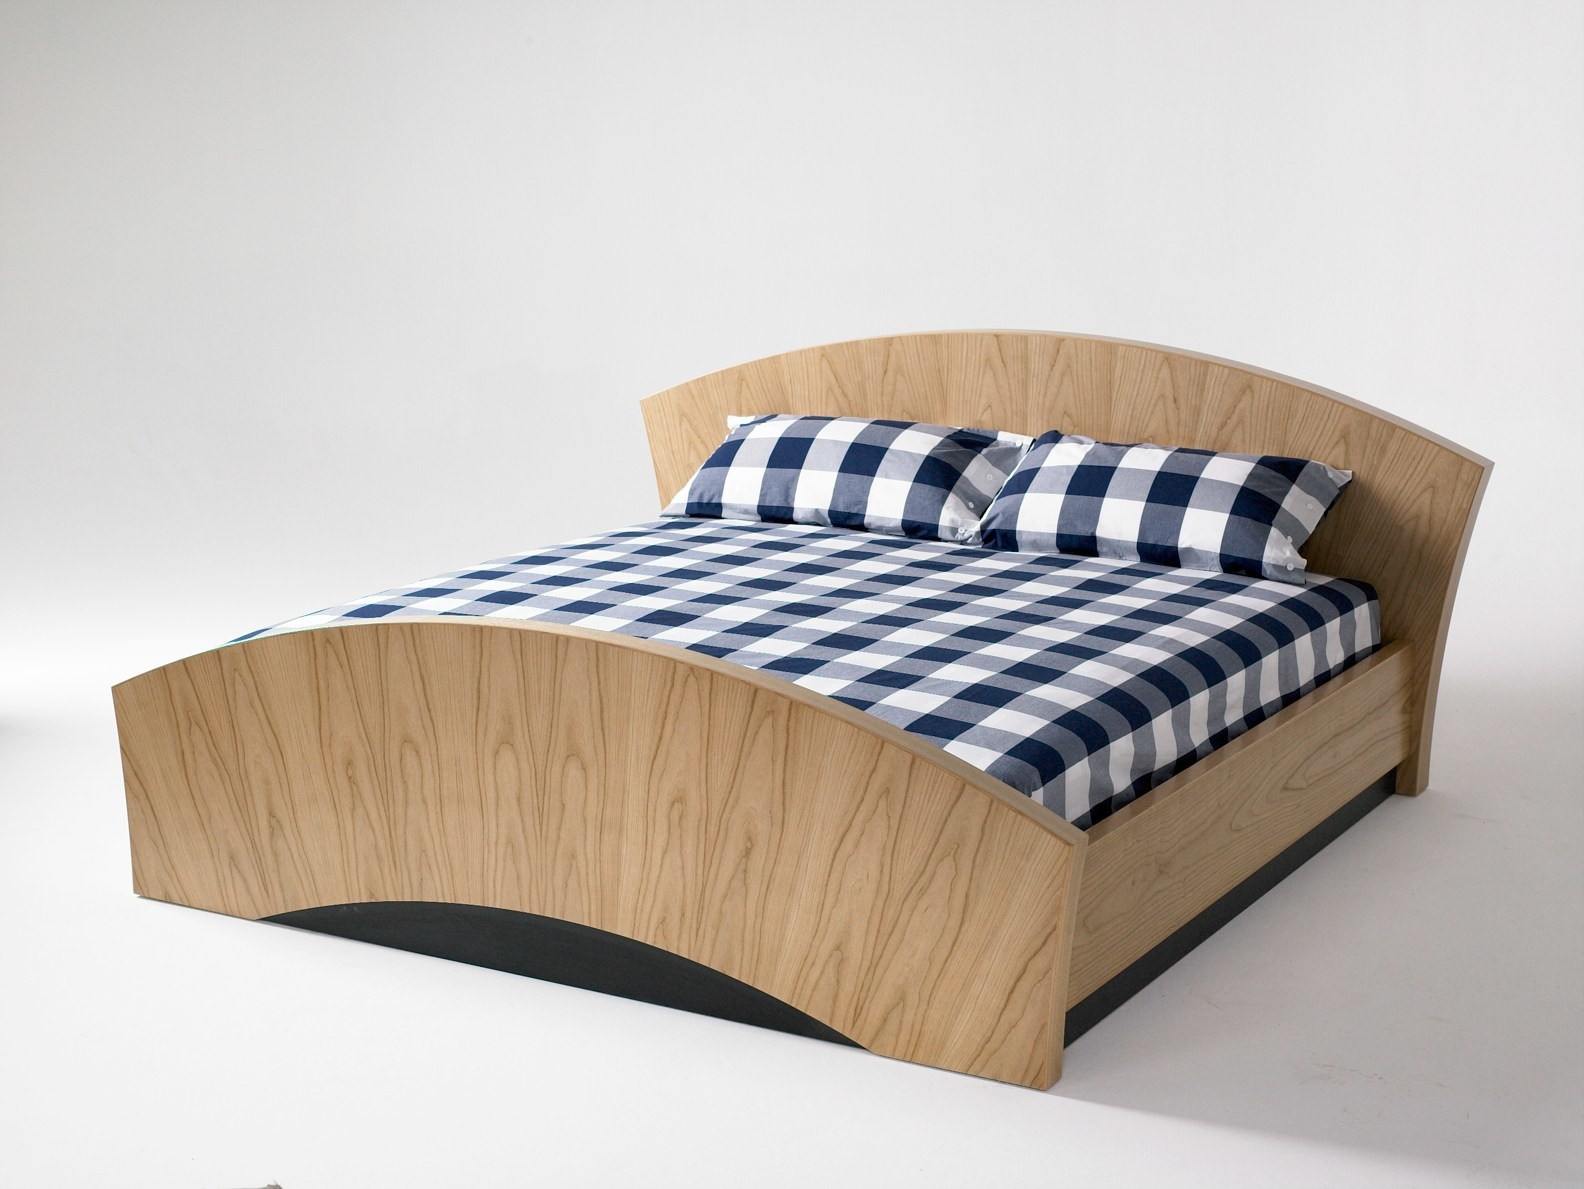 Bed designs 2012 4u wooden bed design - Designs of bed ...